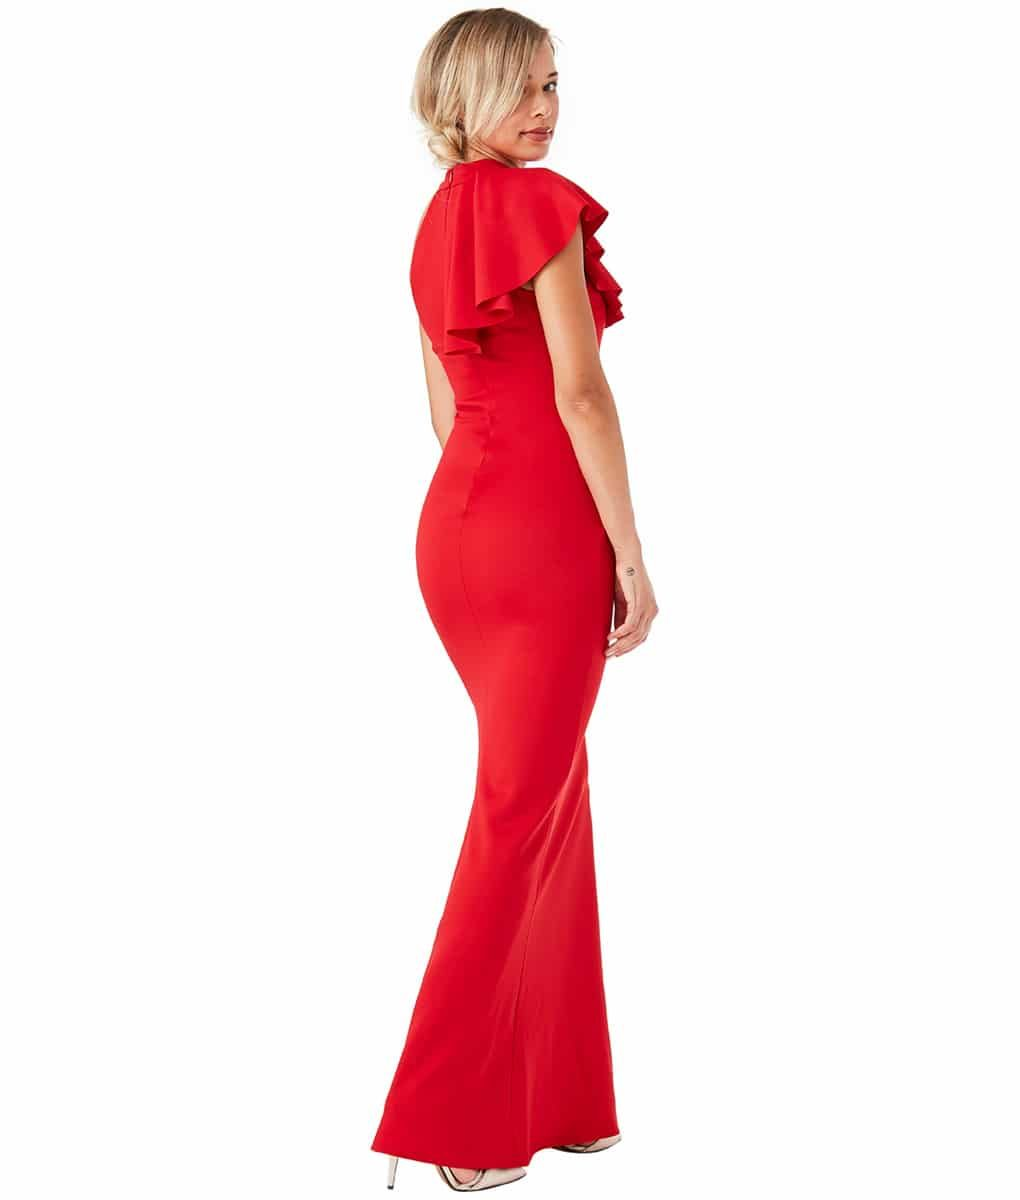 City Goddess - Red Ruffle Collar Gown - Alila